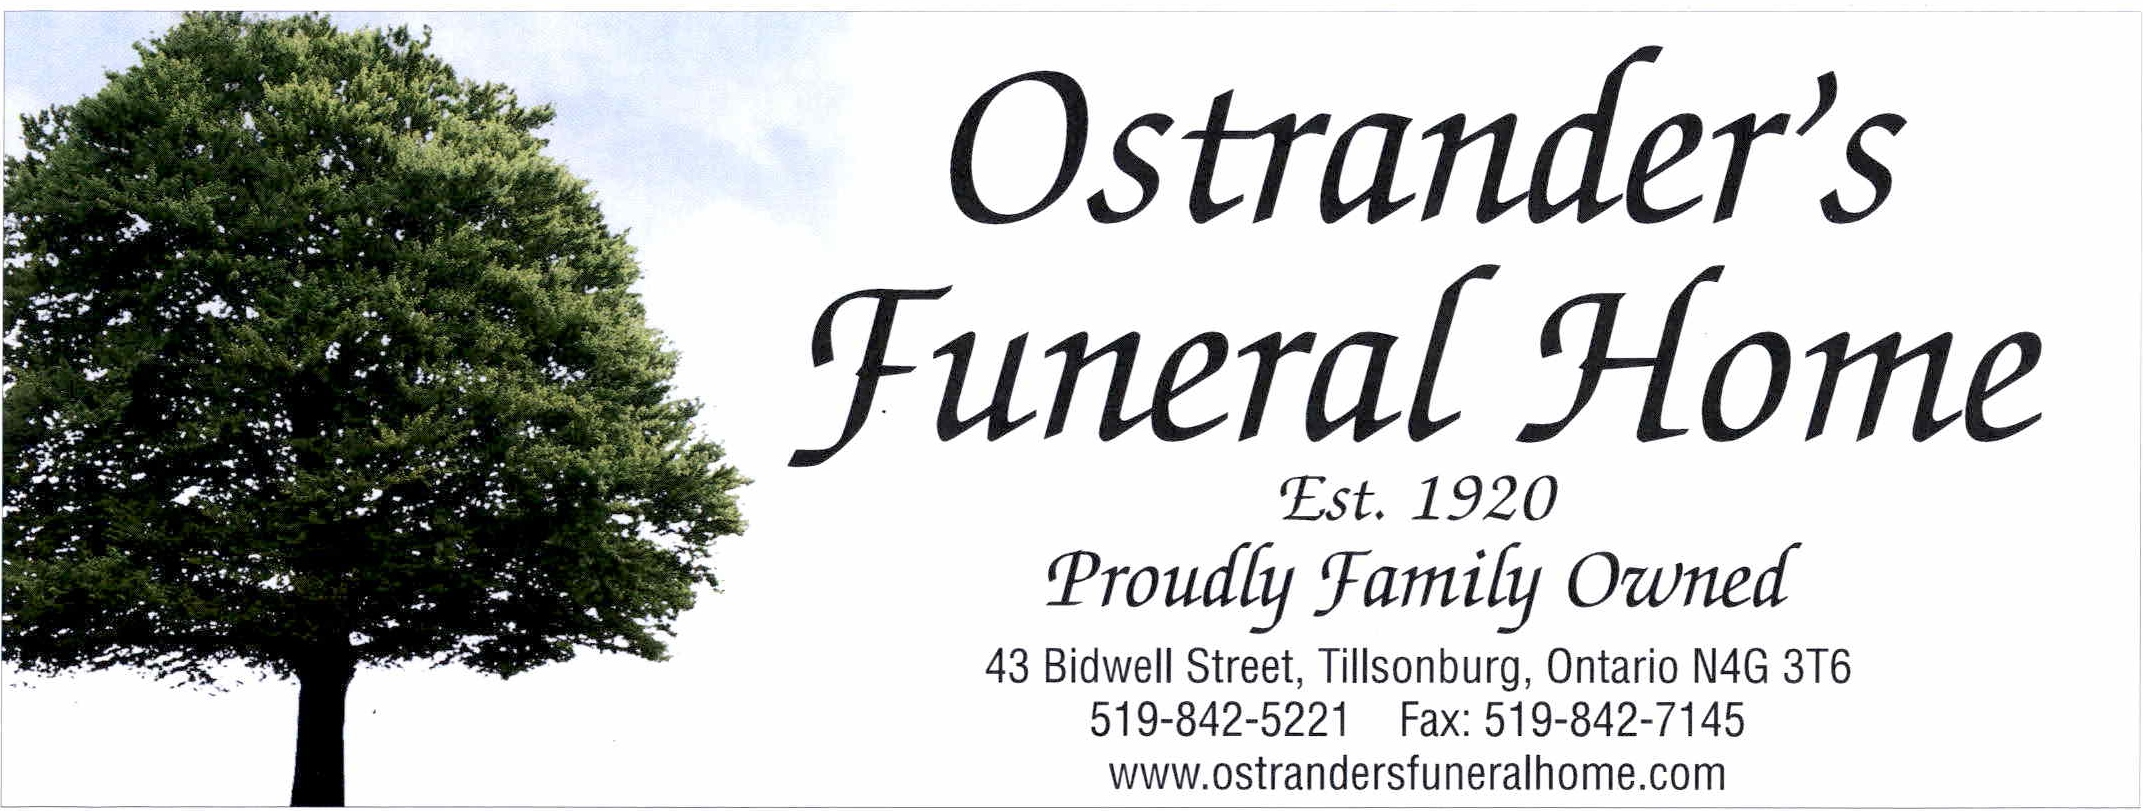 Ostrander's Funeral Home Limited - Tillsonburg, ON N4G 3T6 - (519)842-5221 | ShowMeLocal.com